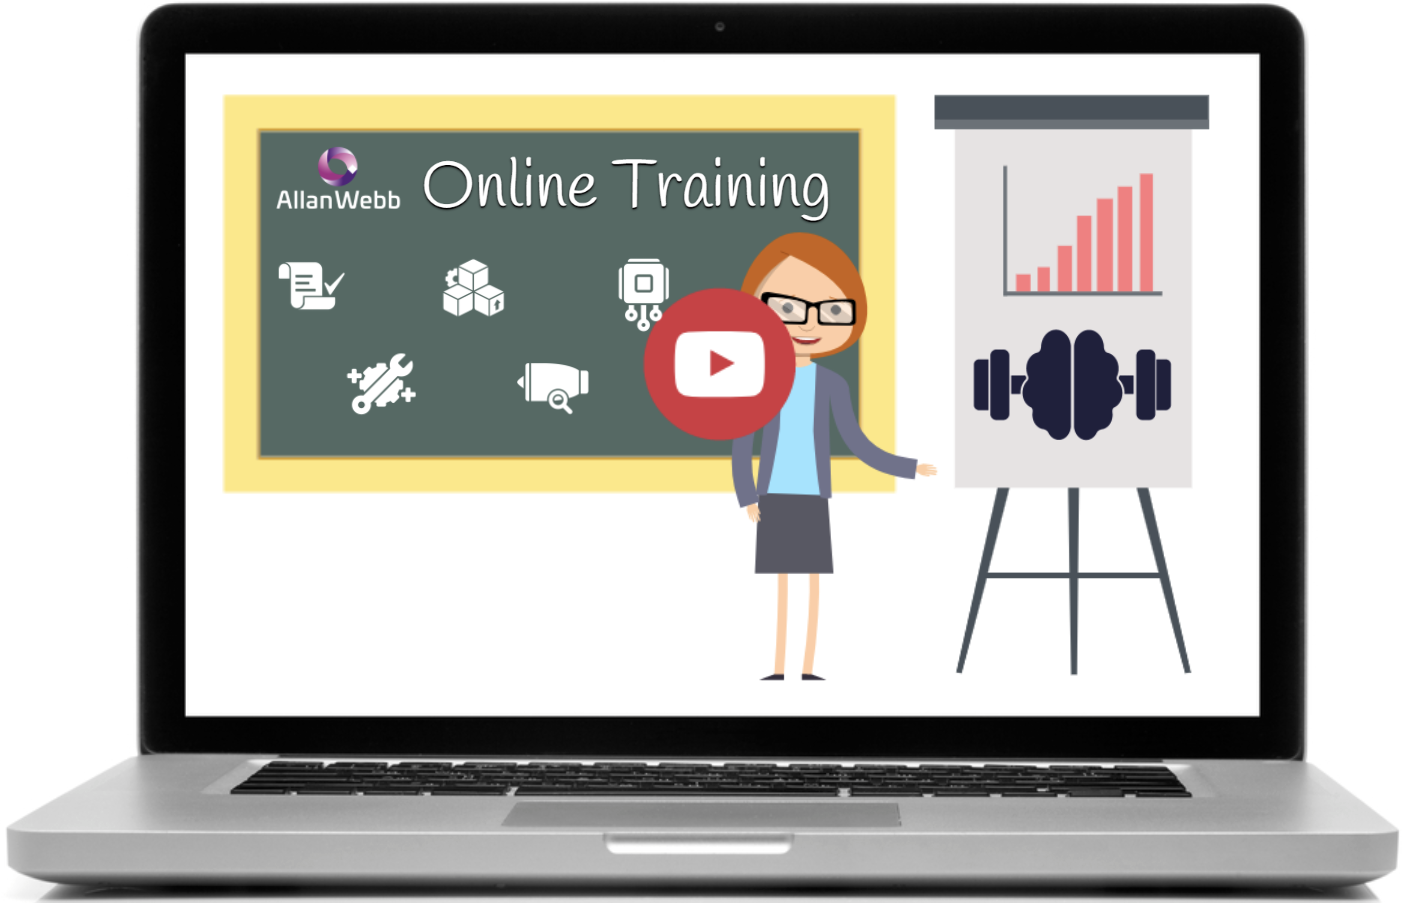 Online Training PC Learning